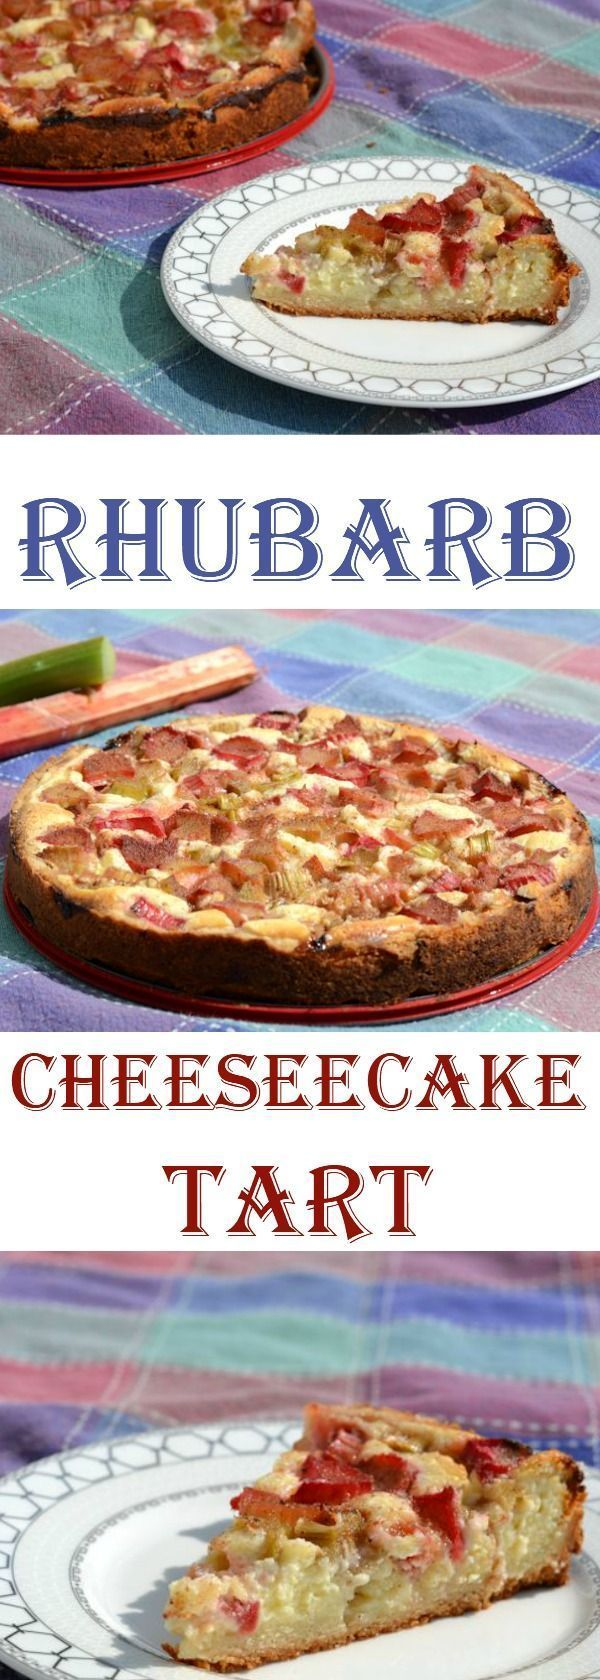 If you love rhubarb, you will adore this decadent tart! Perfect for a summer dessert, it layers cheesecake filling over a crumb crust with a delicious rhubarb topping! Make sure to save it to your des is part of Rhubarb desserts -